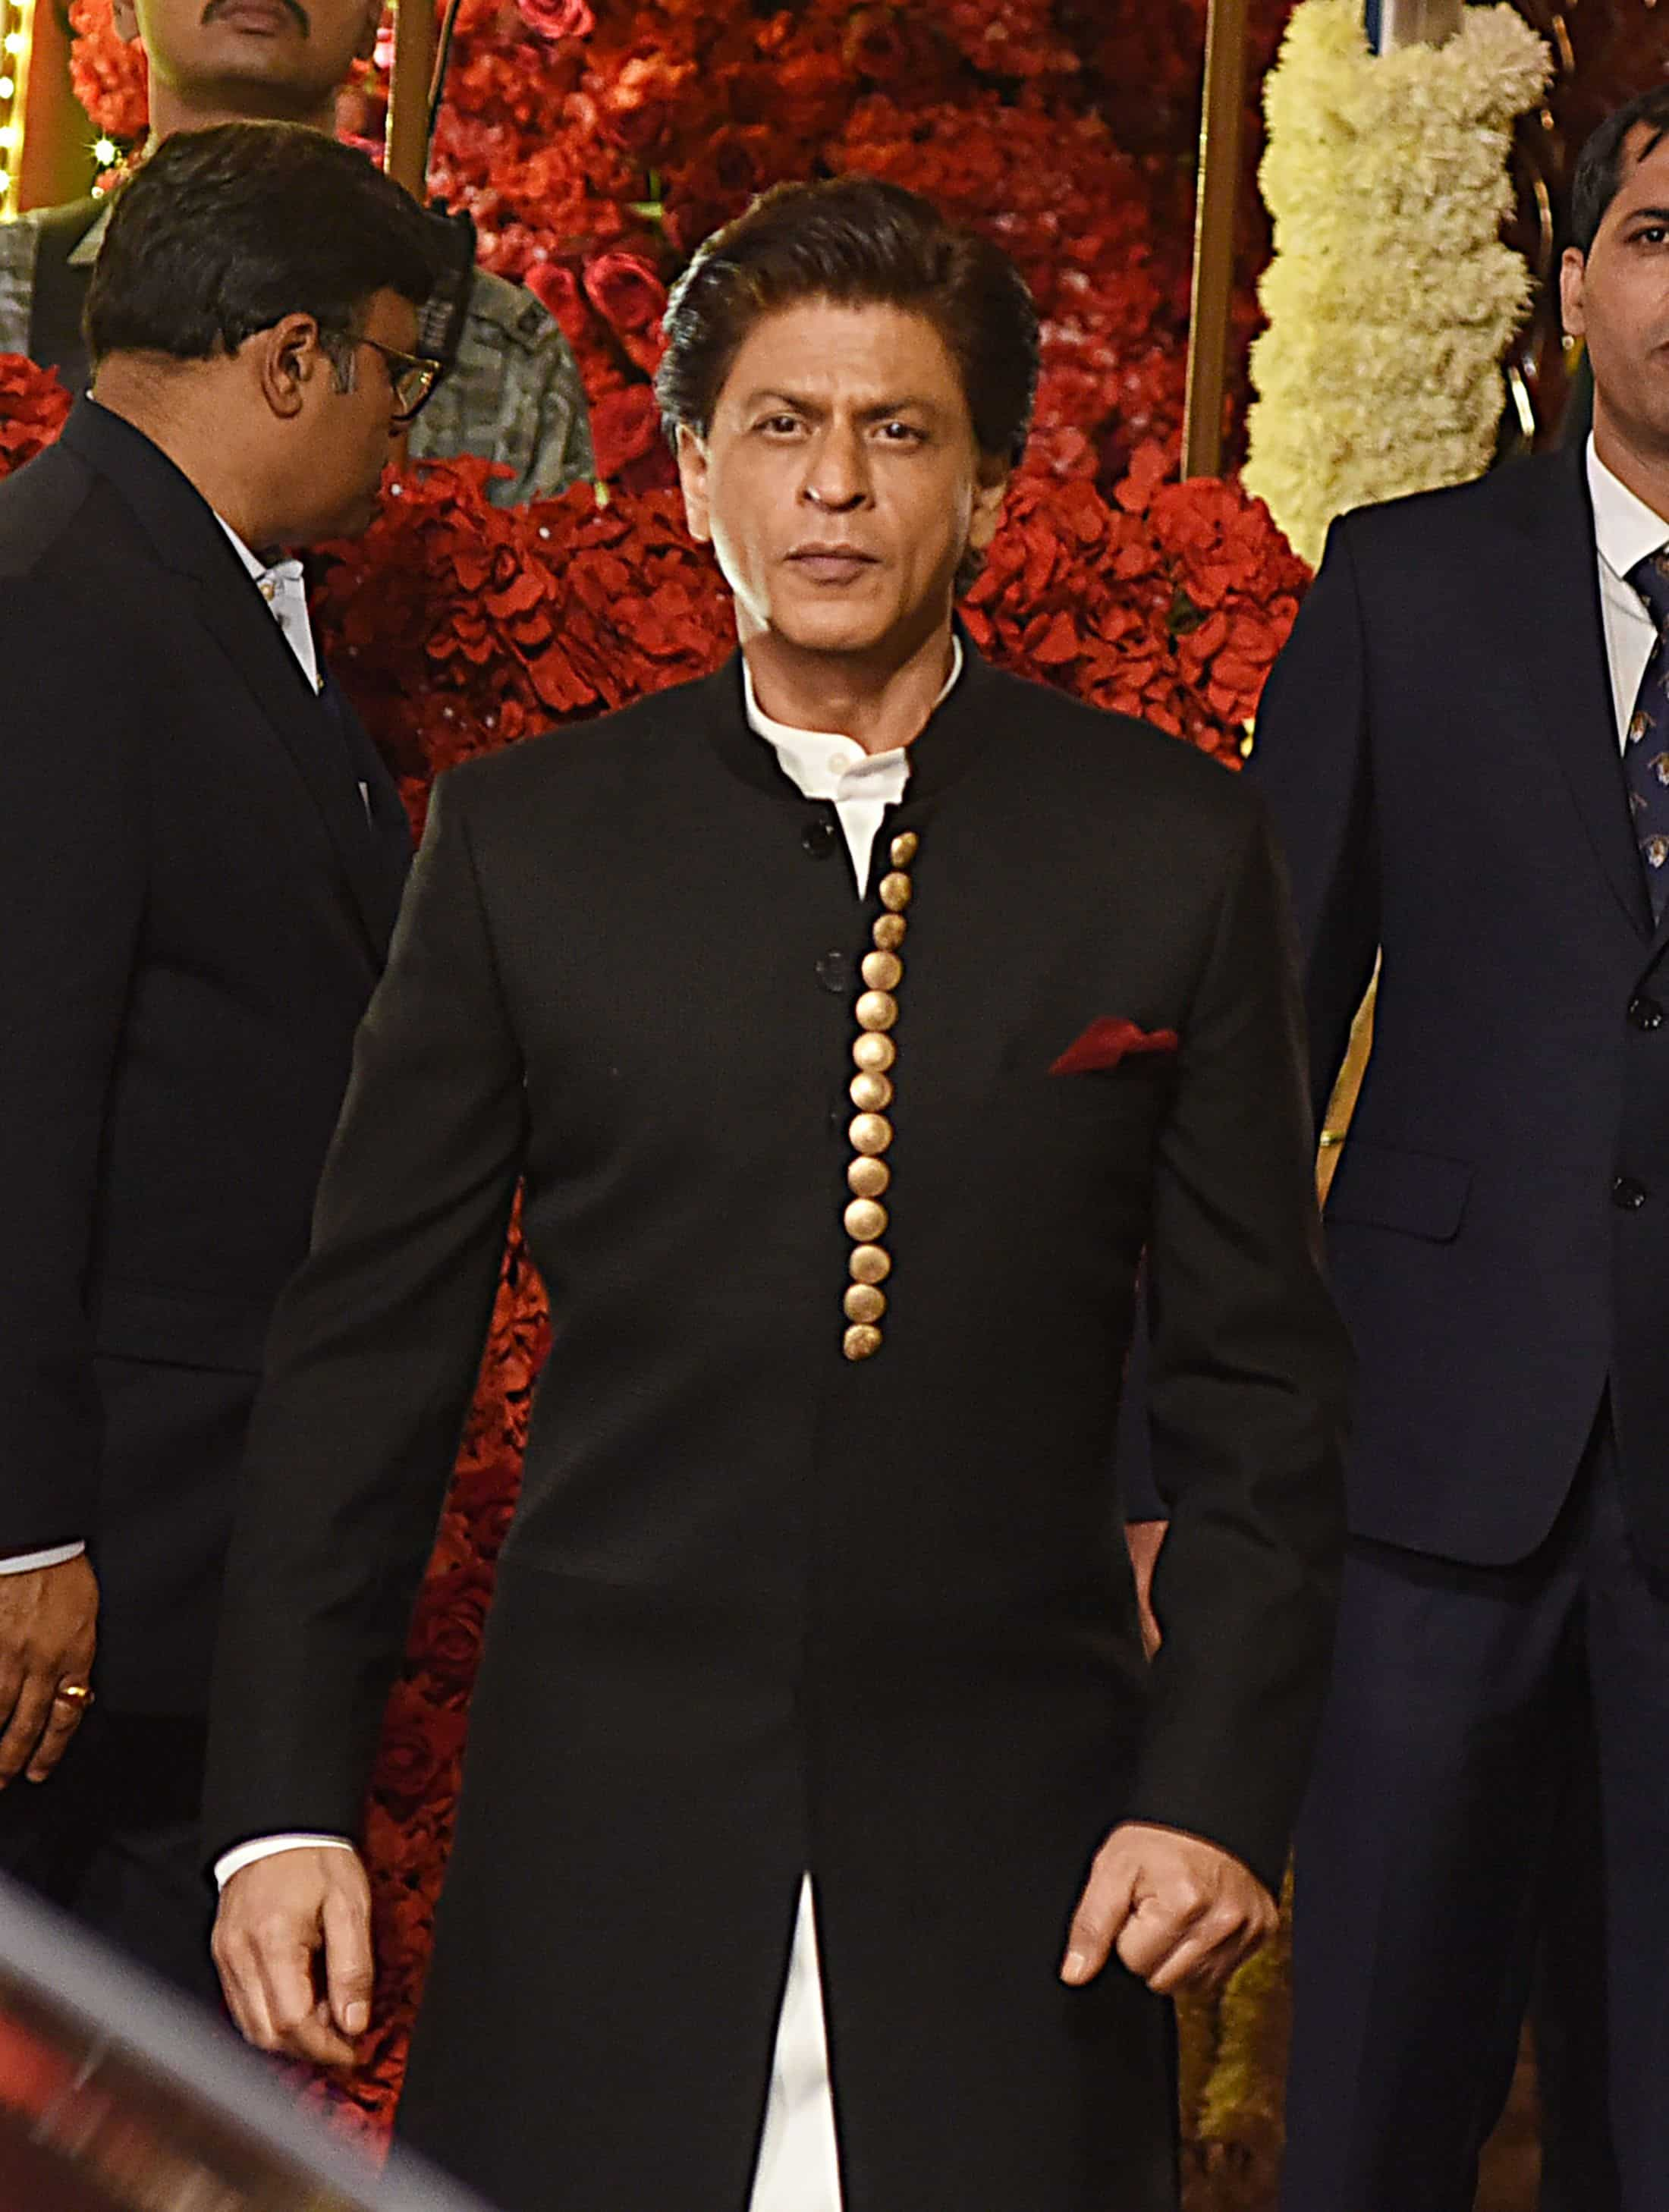 Superstar Shah Rukh Khan attends the wedding of Isha Ambani. Photo: AFP